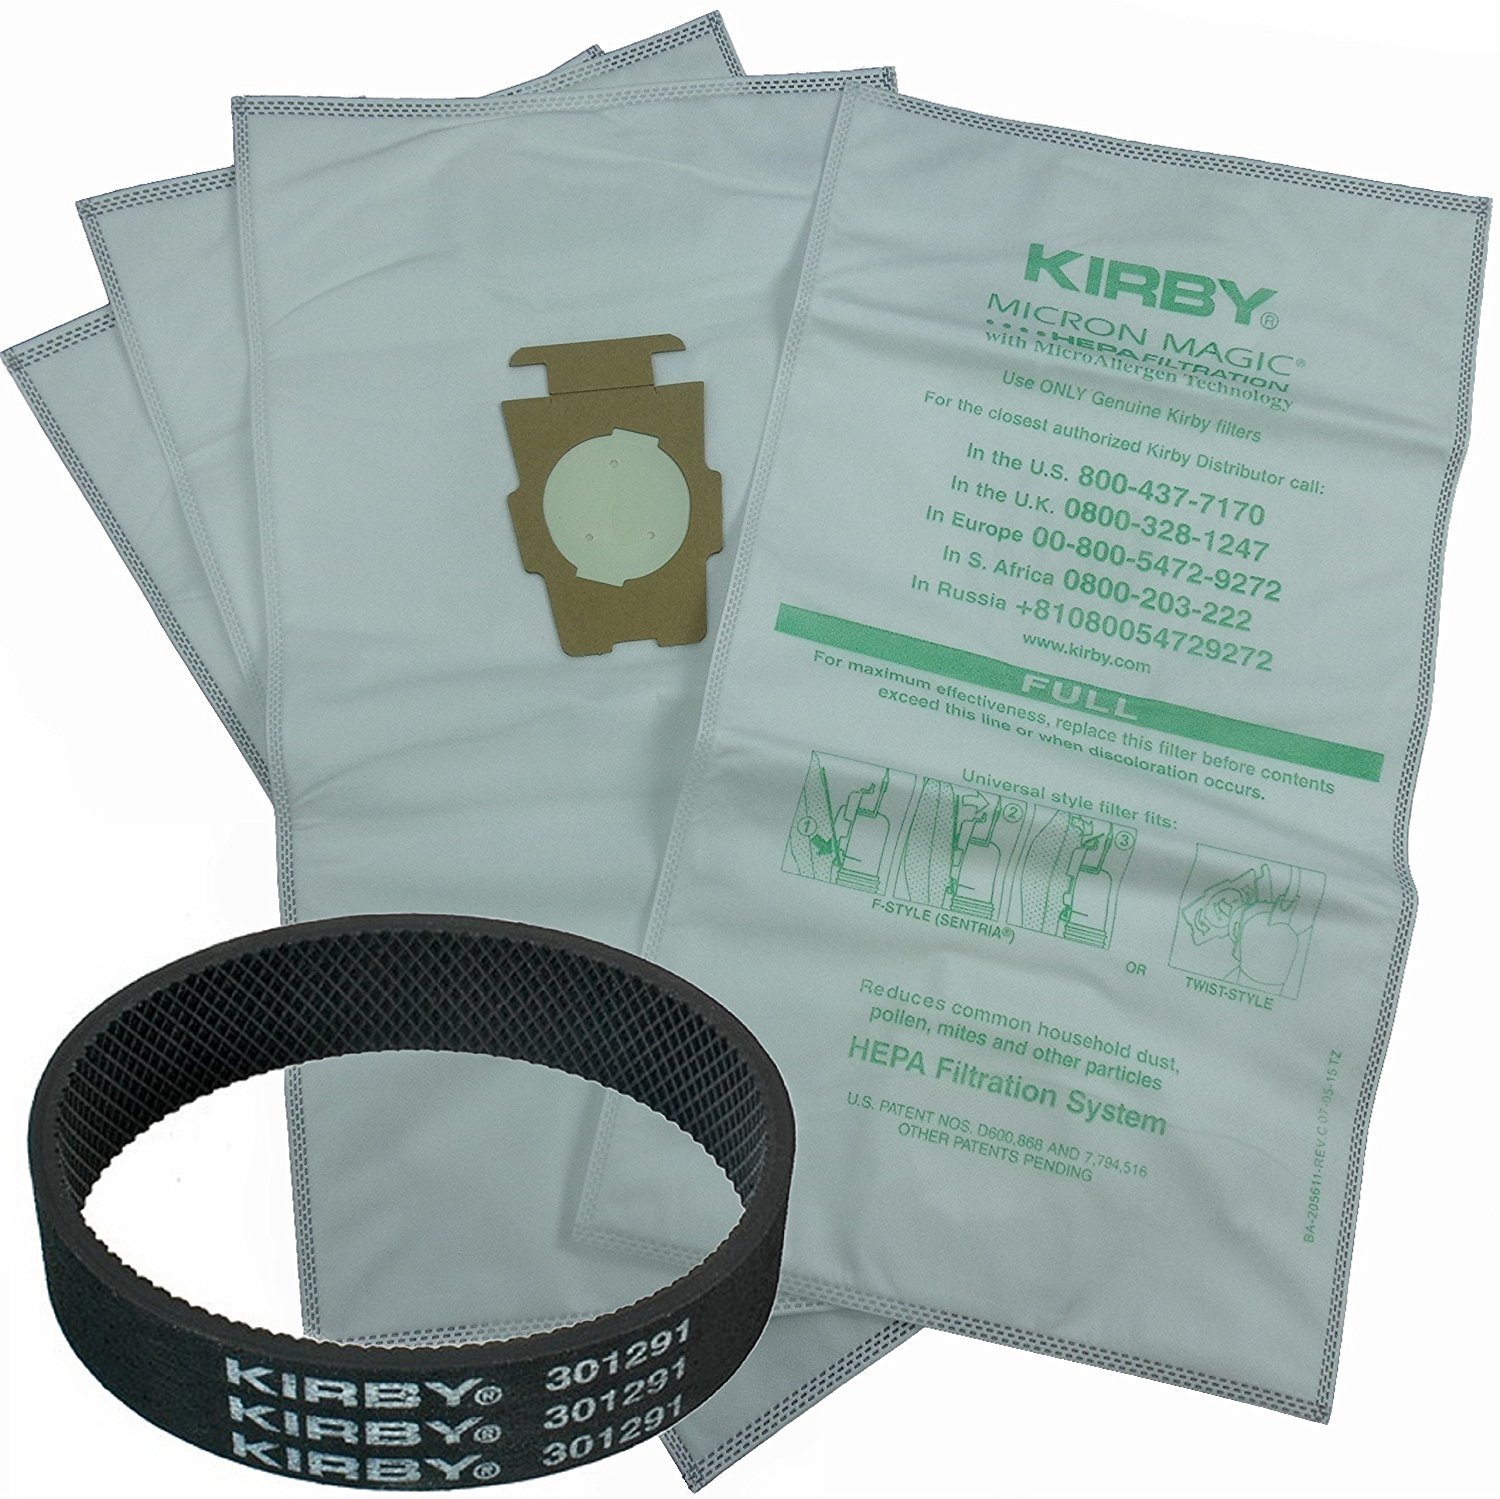 4 Allergen Micron Magic Universal F Style Turn Style Vacuum Bags & 1 Belt, Genuine Kirby Allergen Vacuum Cleaner Bags plus OEM 301291 Belt By Kirby